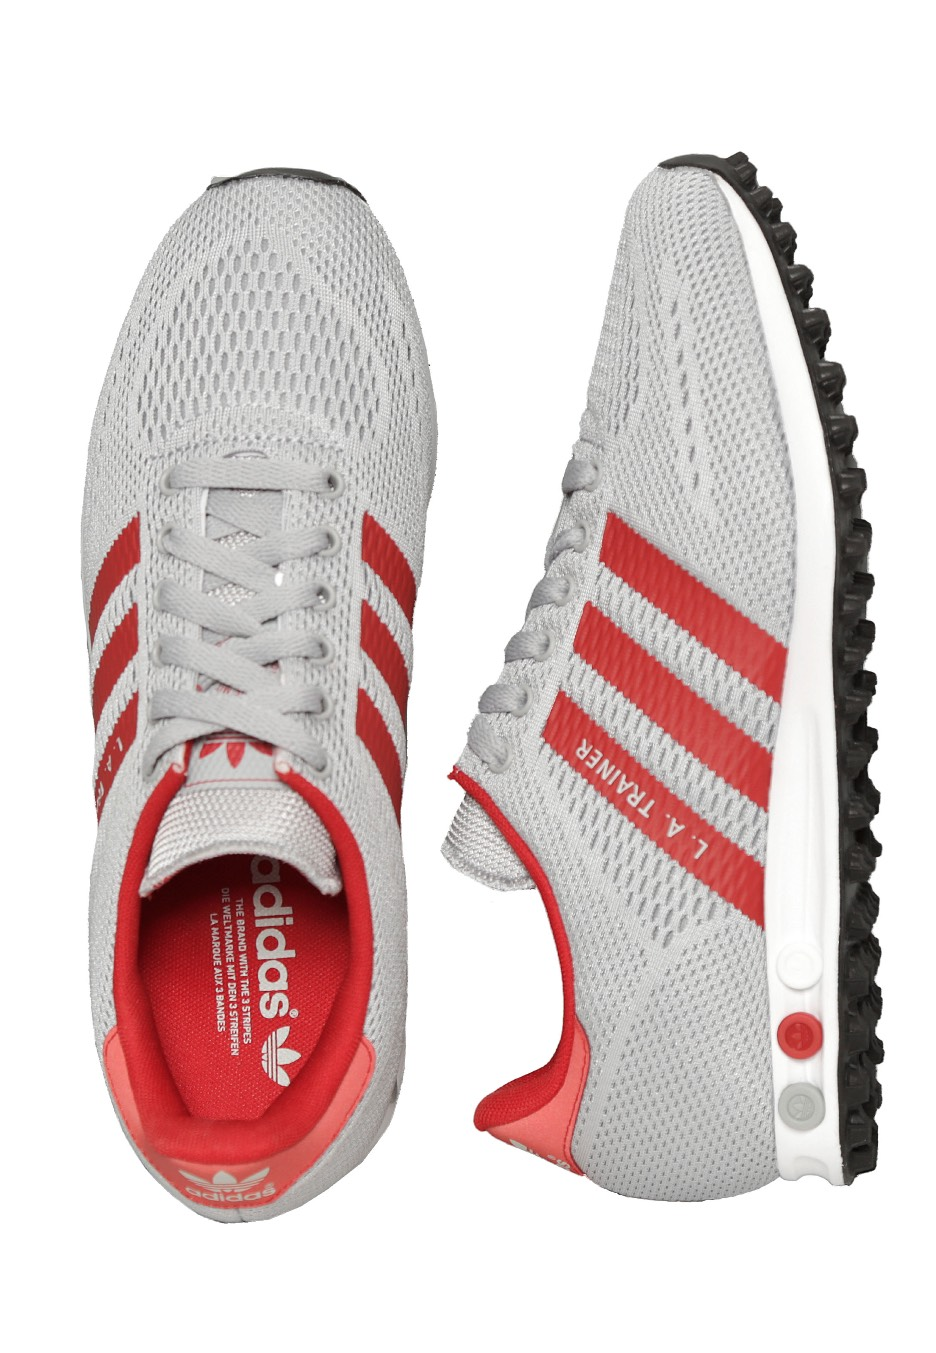 Adidas - LA Trainer EM Clear Onix Power Red FTWR White - Shoes -  Impericon.com AU db3cb2757